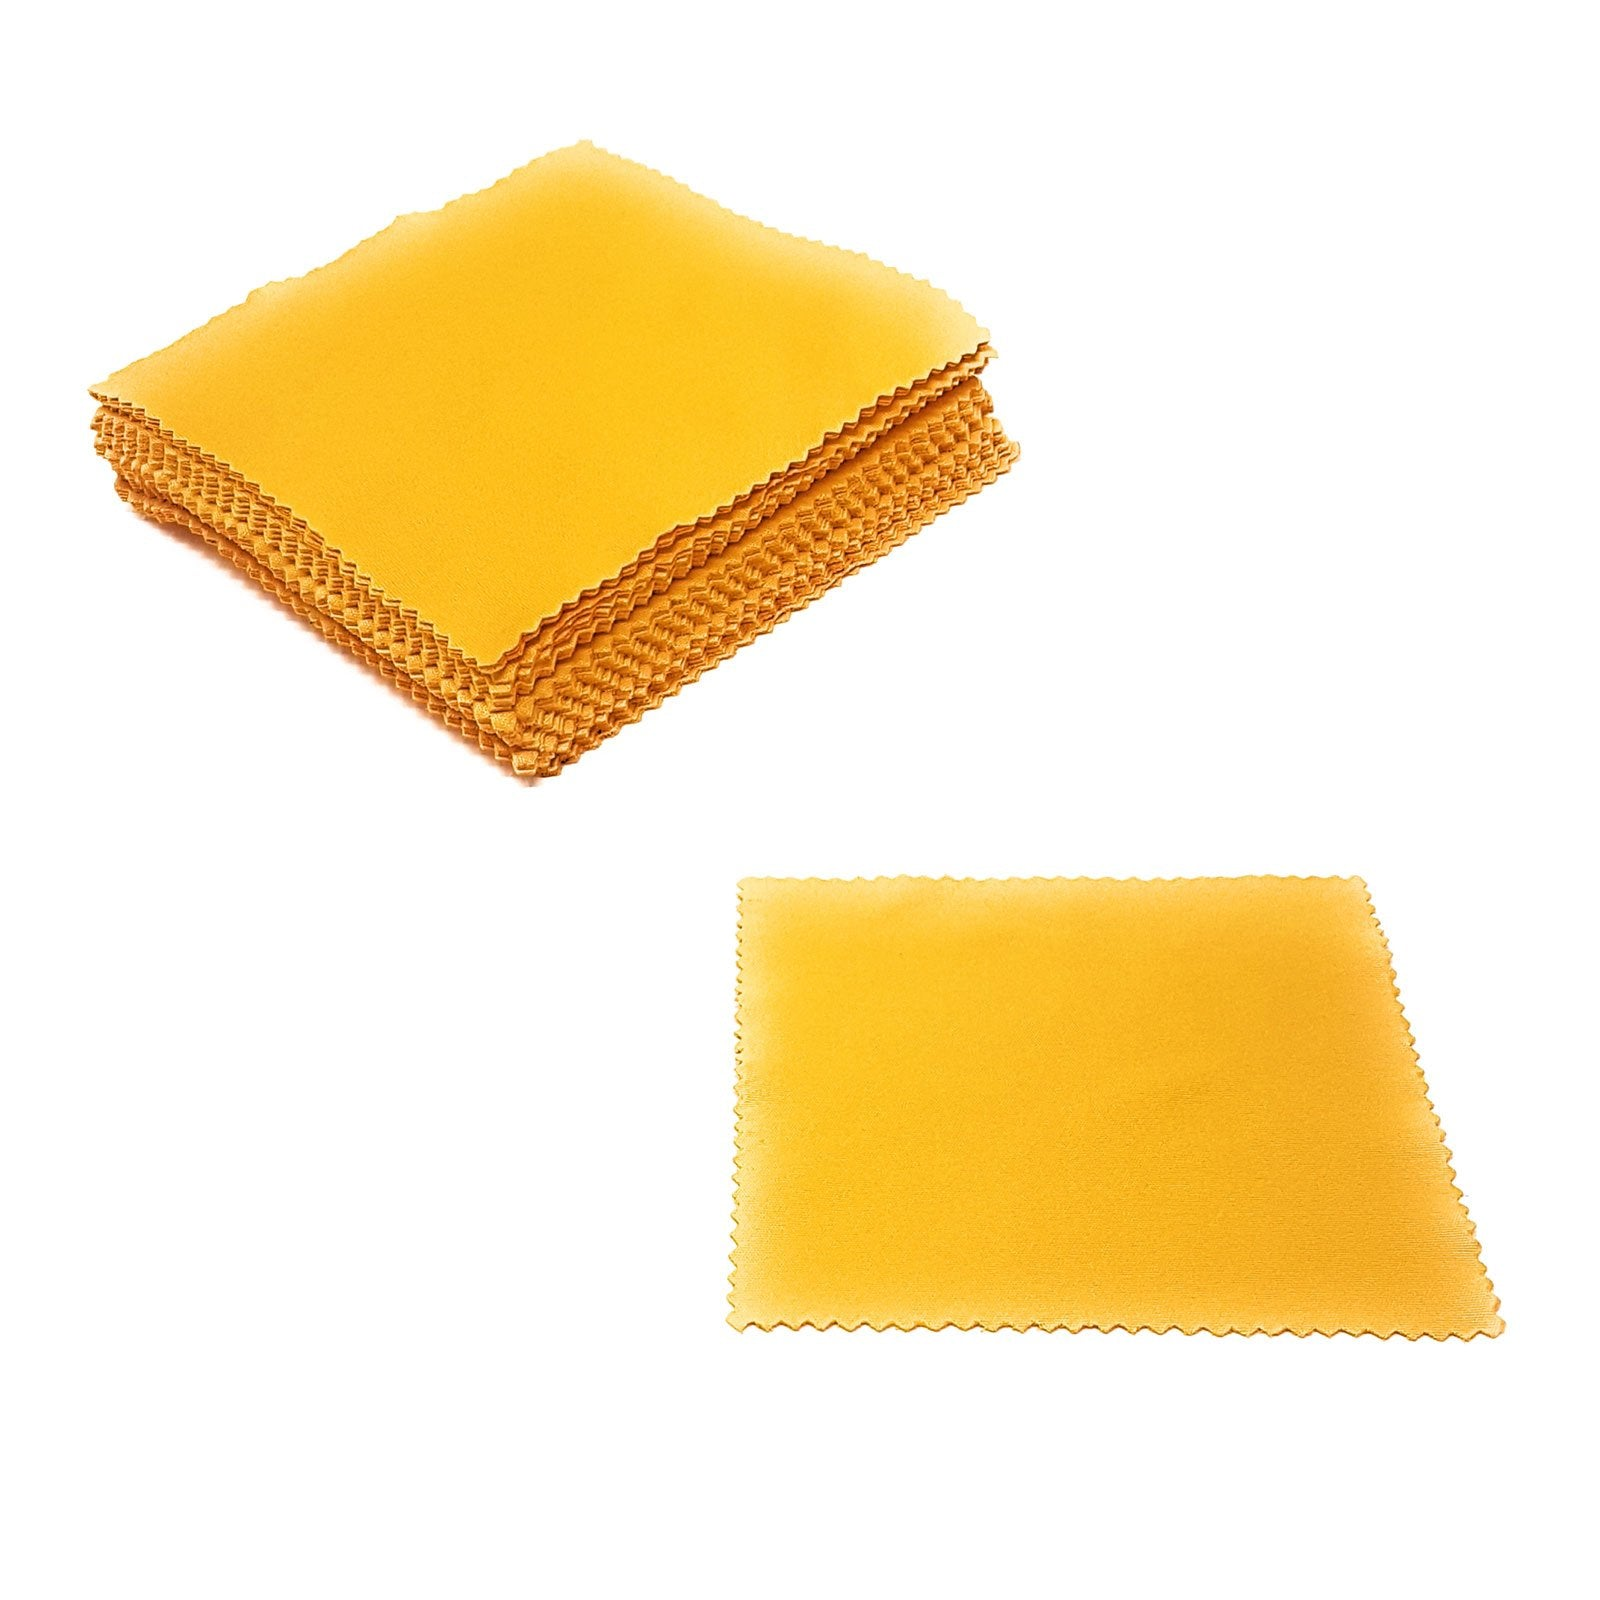 Wholesale Lens Cleaning Cloths - Yellow